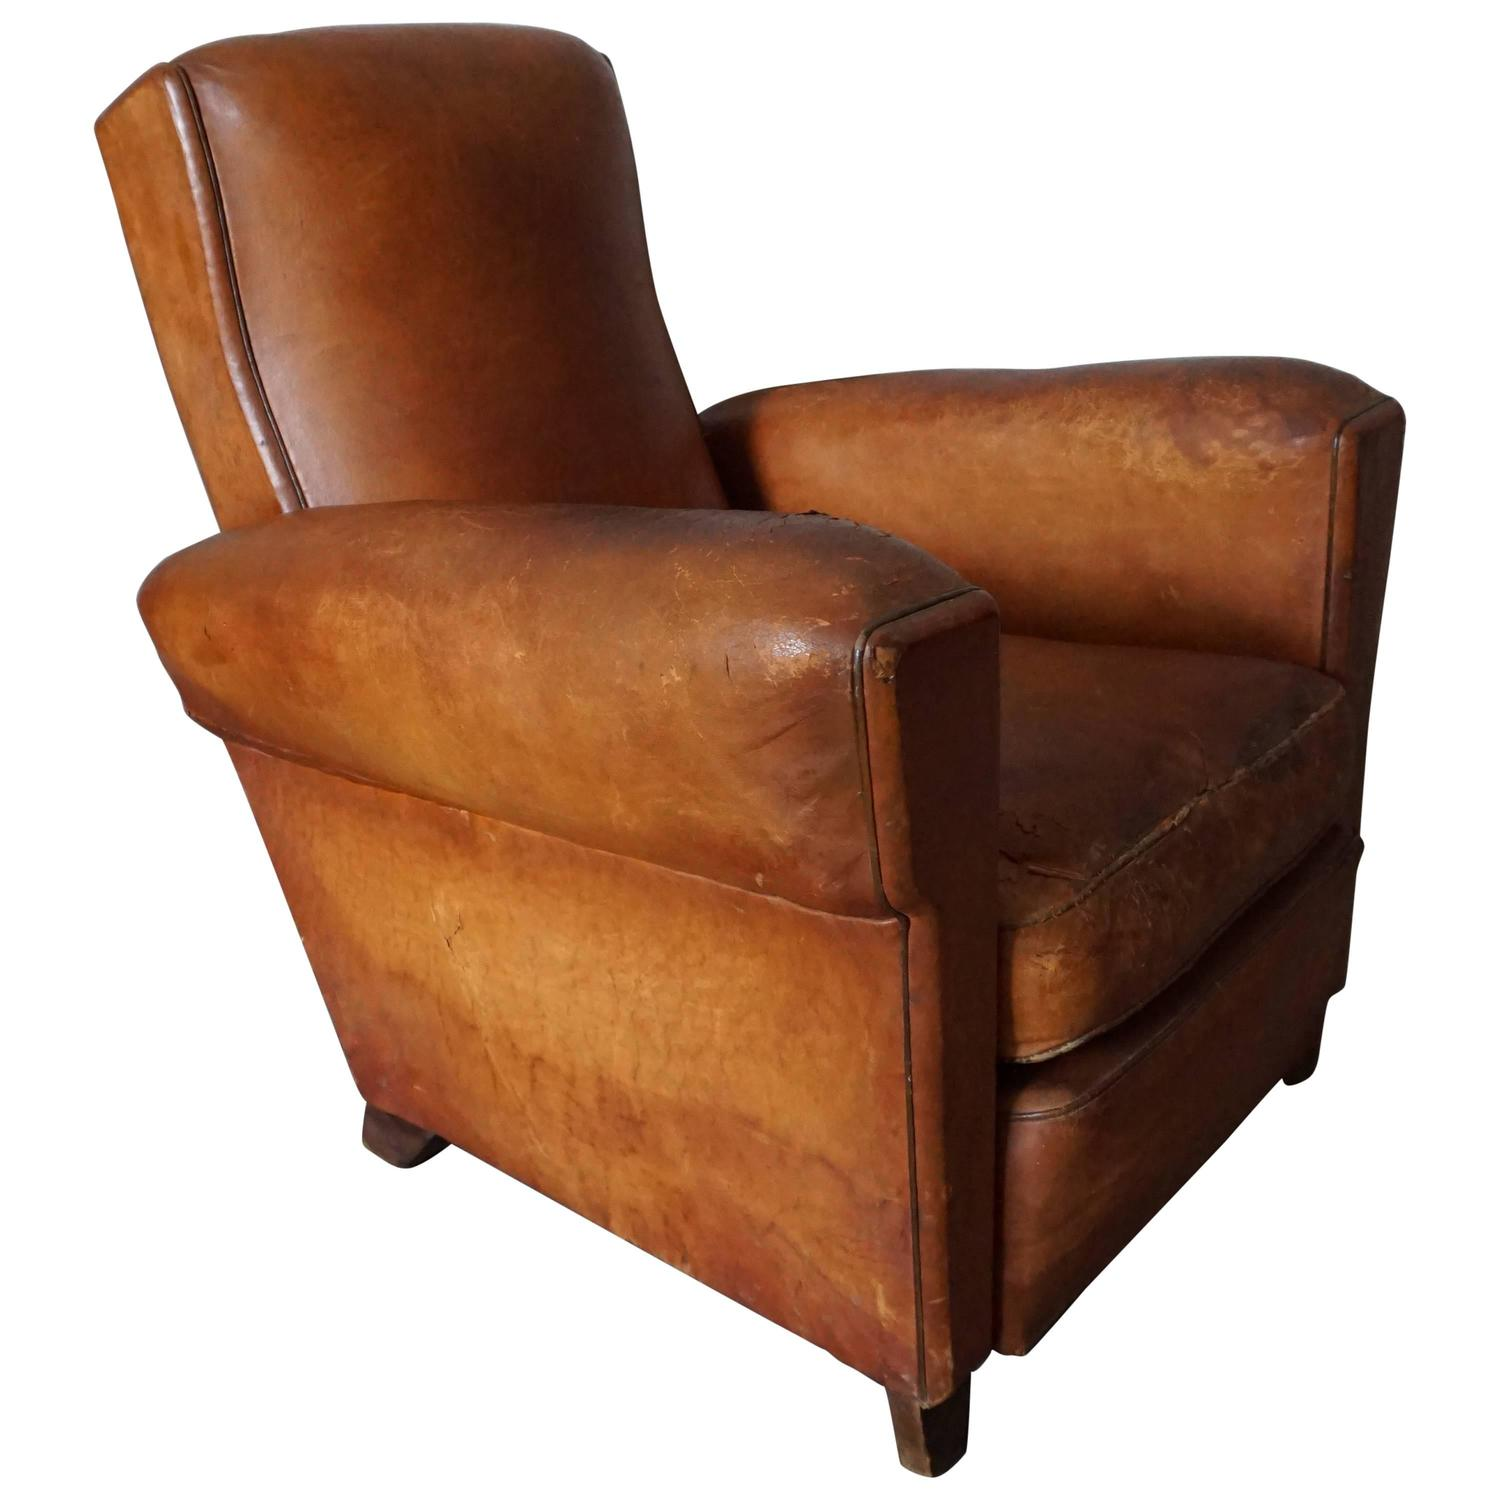 art deco club chairs leather booster seat for chair distressed french cognac